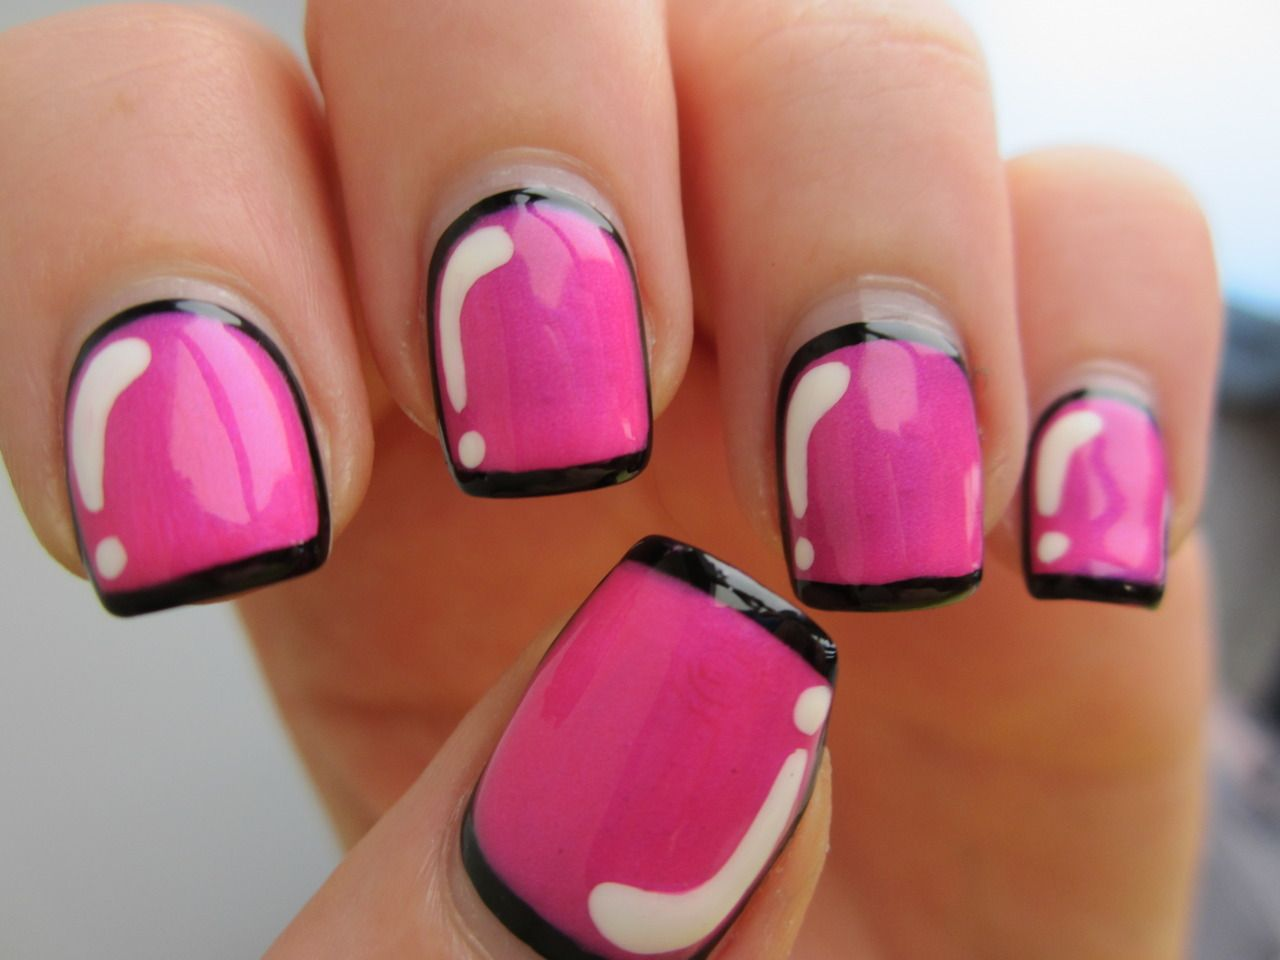 Hot pink cartoon nails tutorial: Paint the nails black. Paint over ...